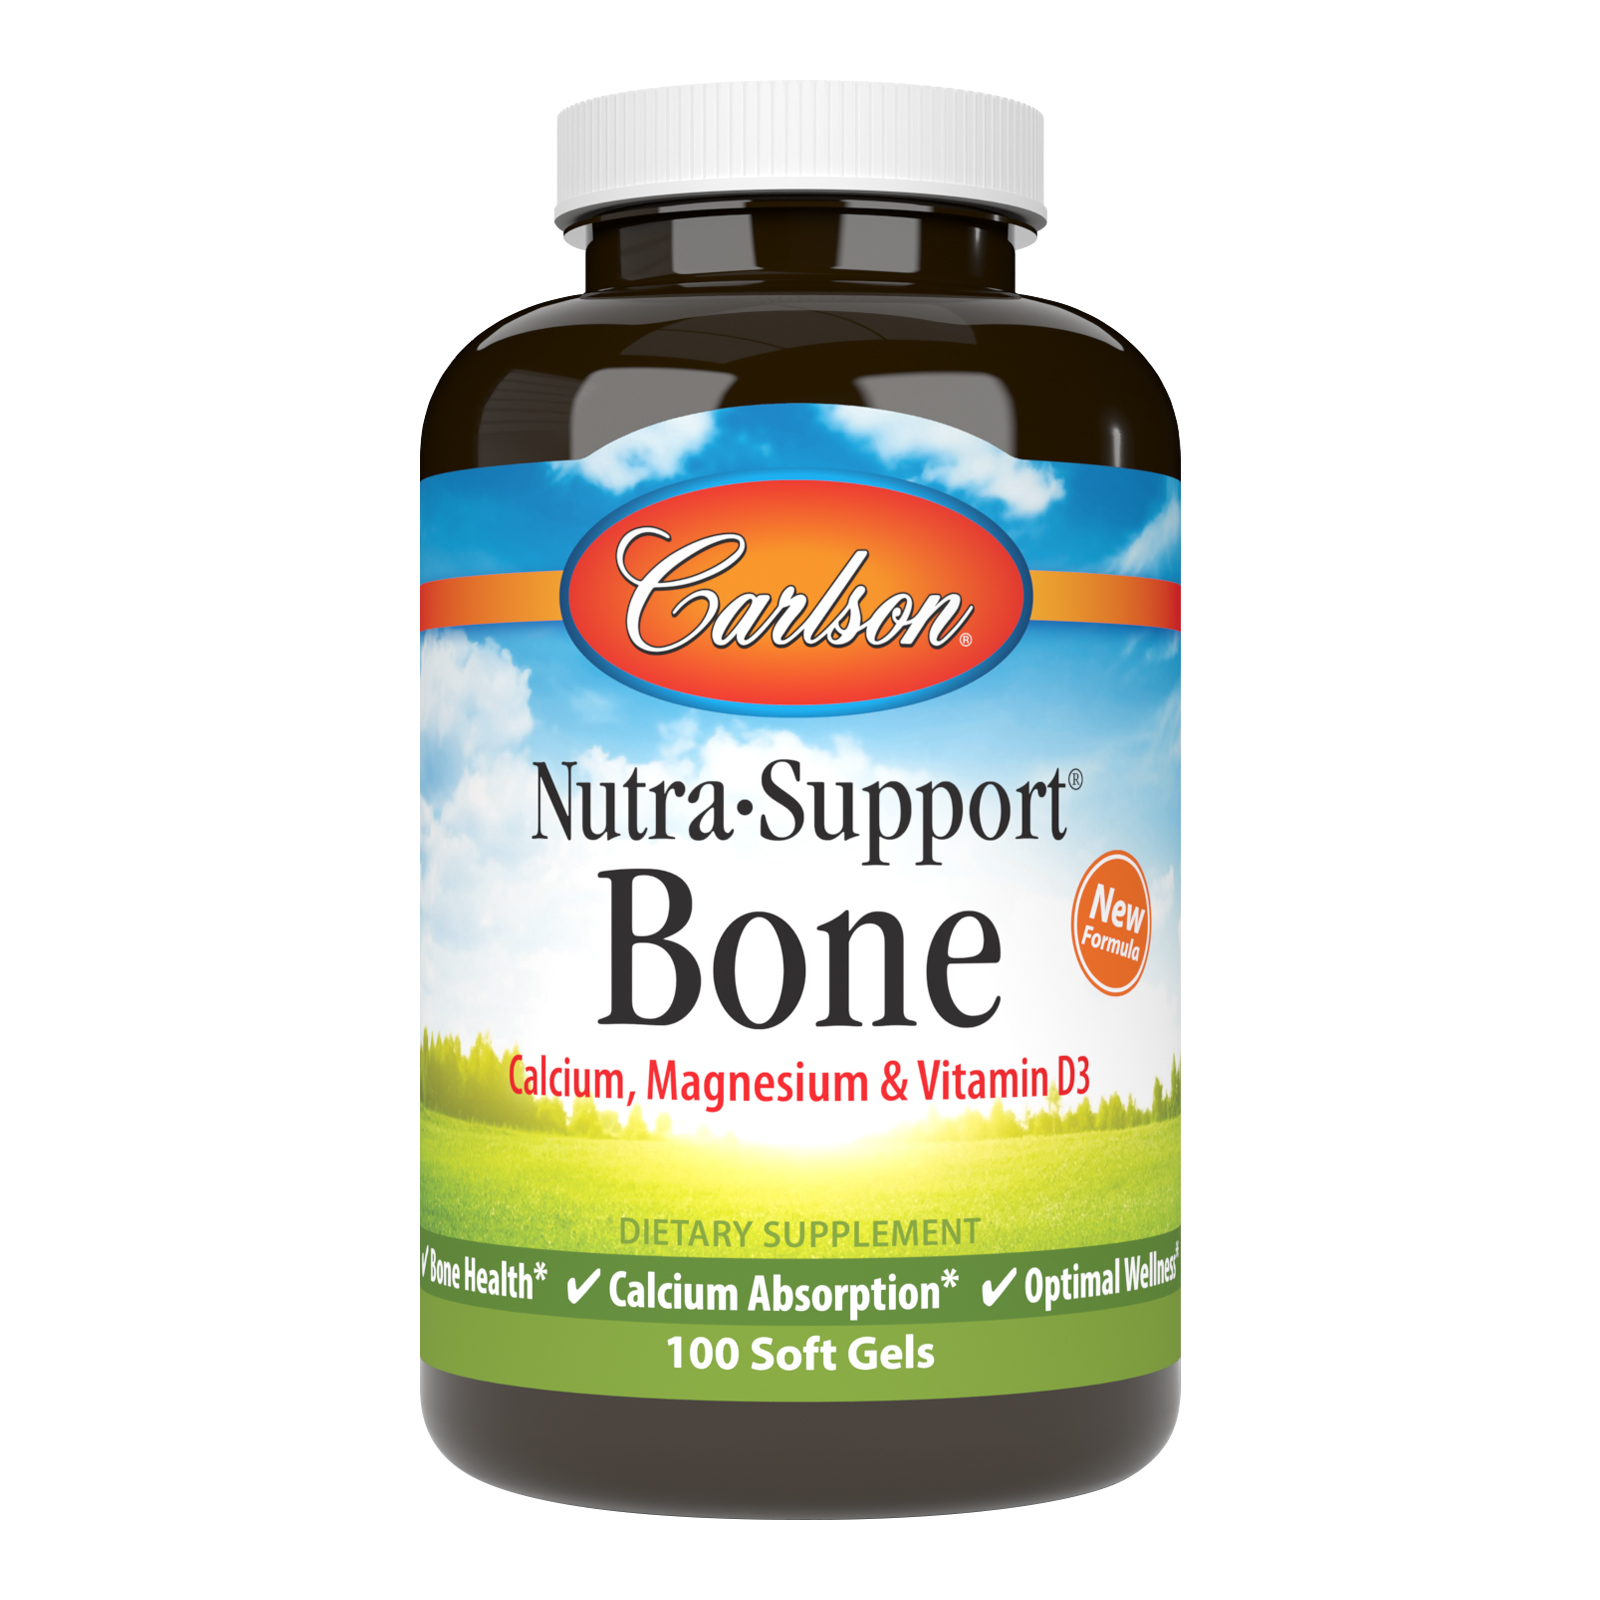 Nutra-Support® Bone